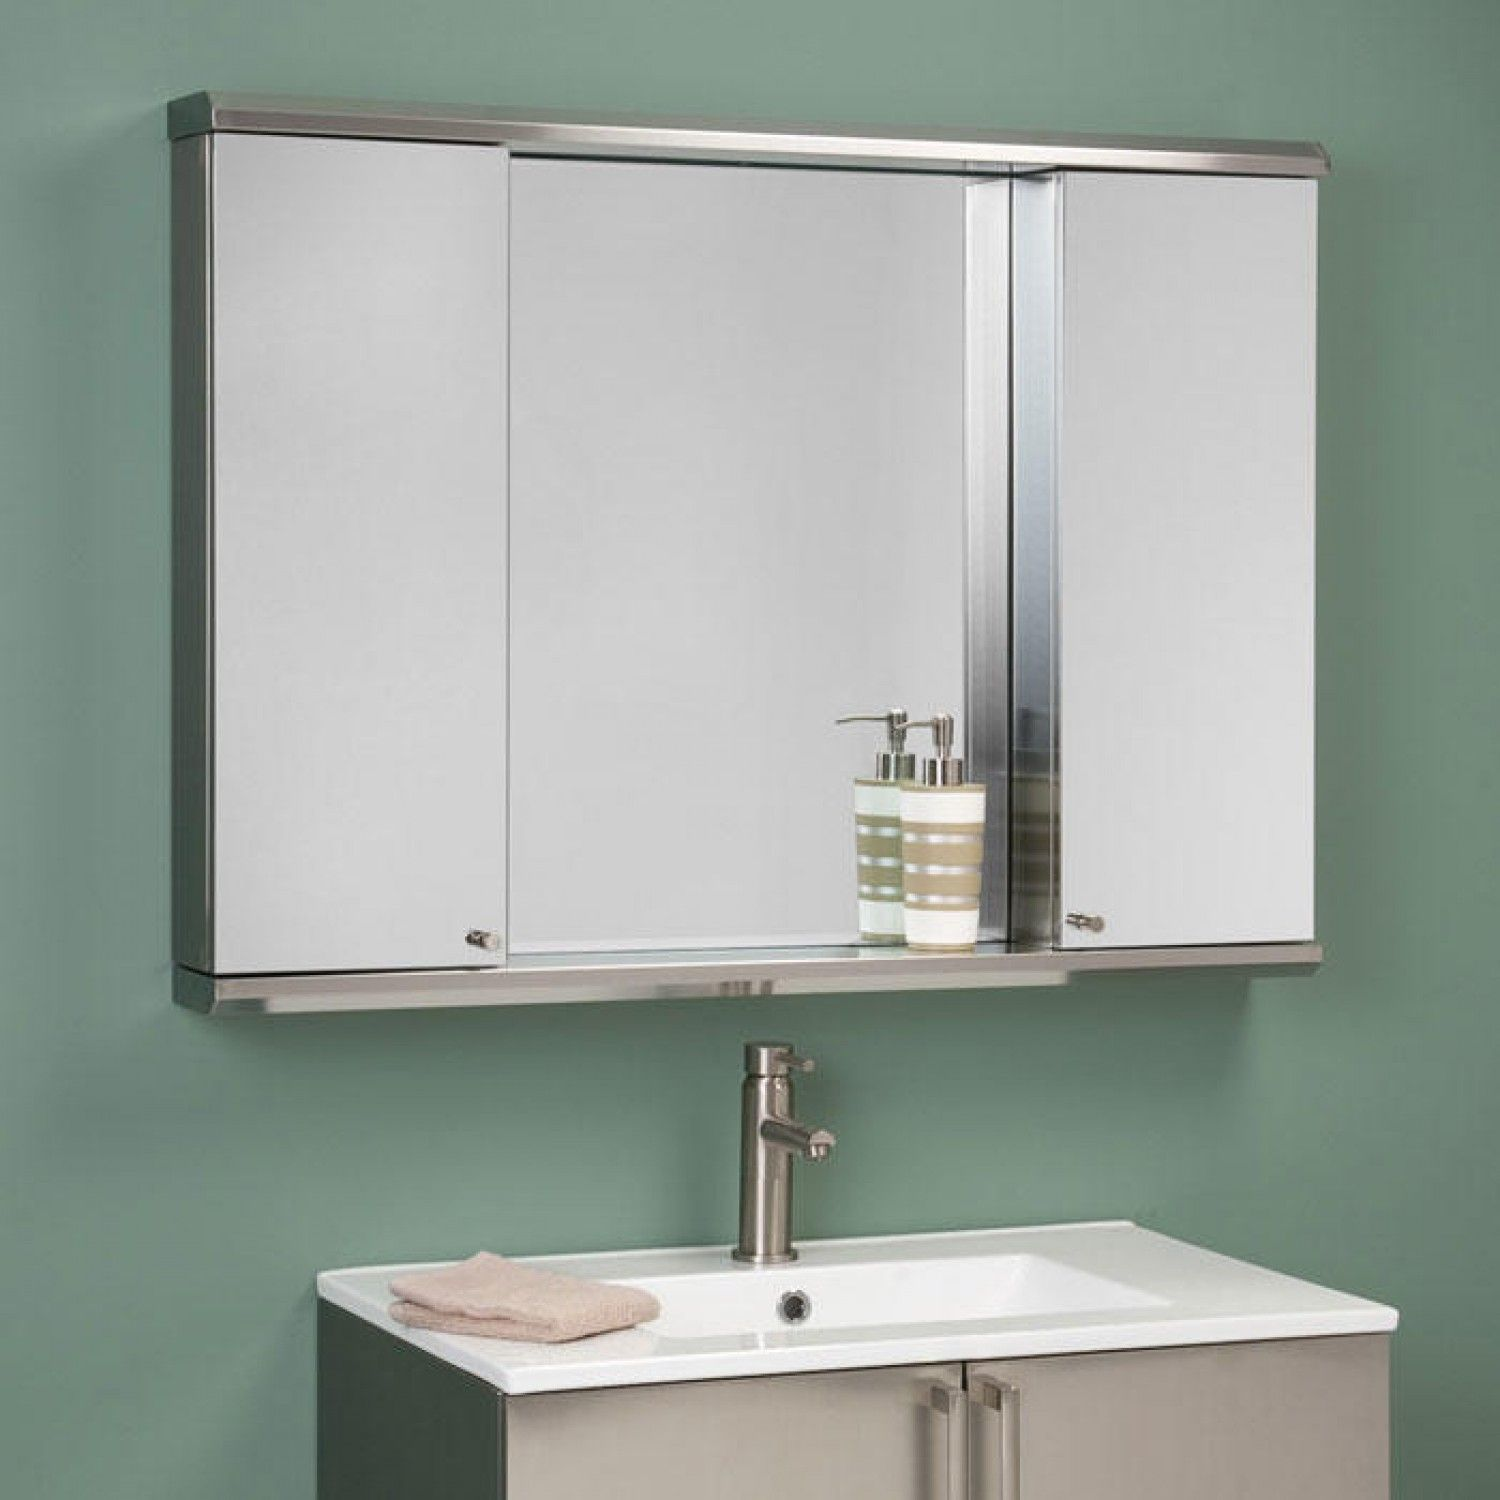 Metropolitan Dual Stainless Steel Medicine Cabinets With Mirror Medicine Cabinet Mirror Bathroom Medicine Cabinet Mirror Cabinets